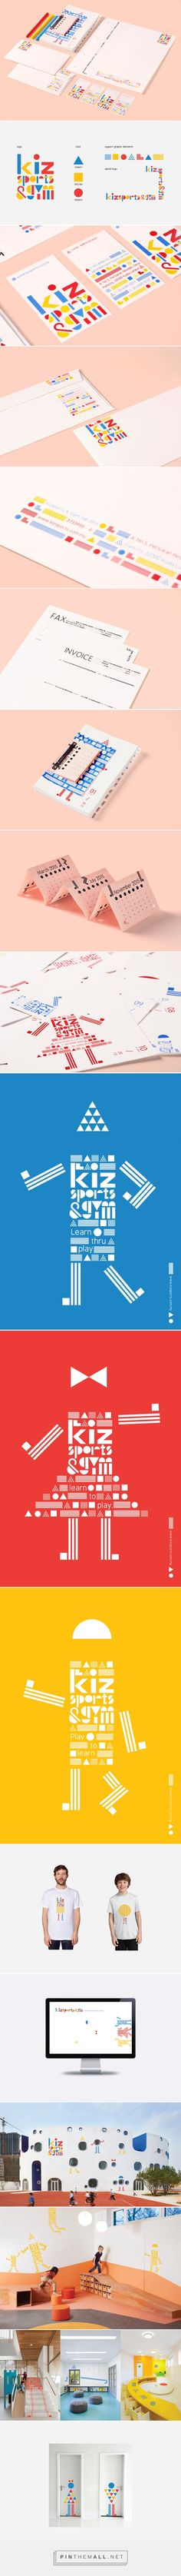 kizsports & Gym on Behance - created via https://pinthemall.net